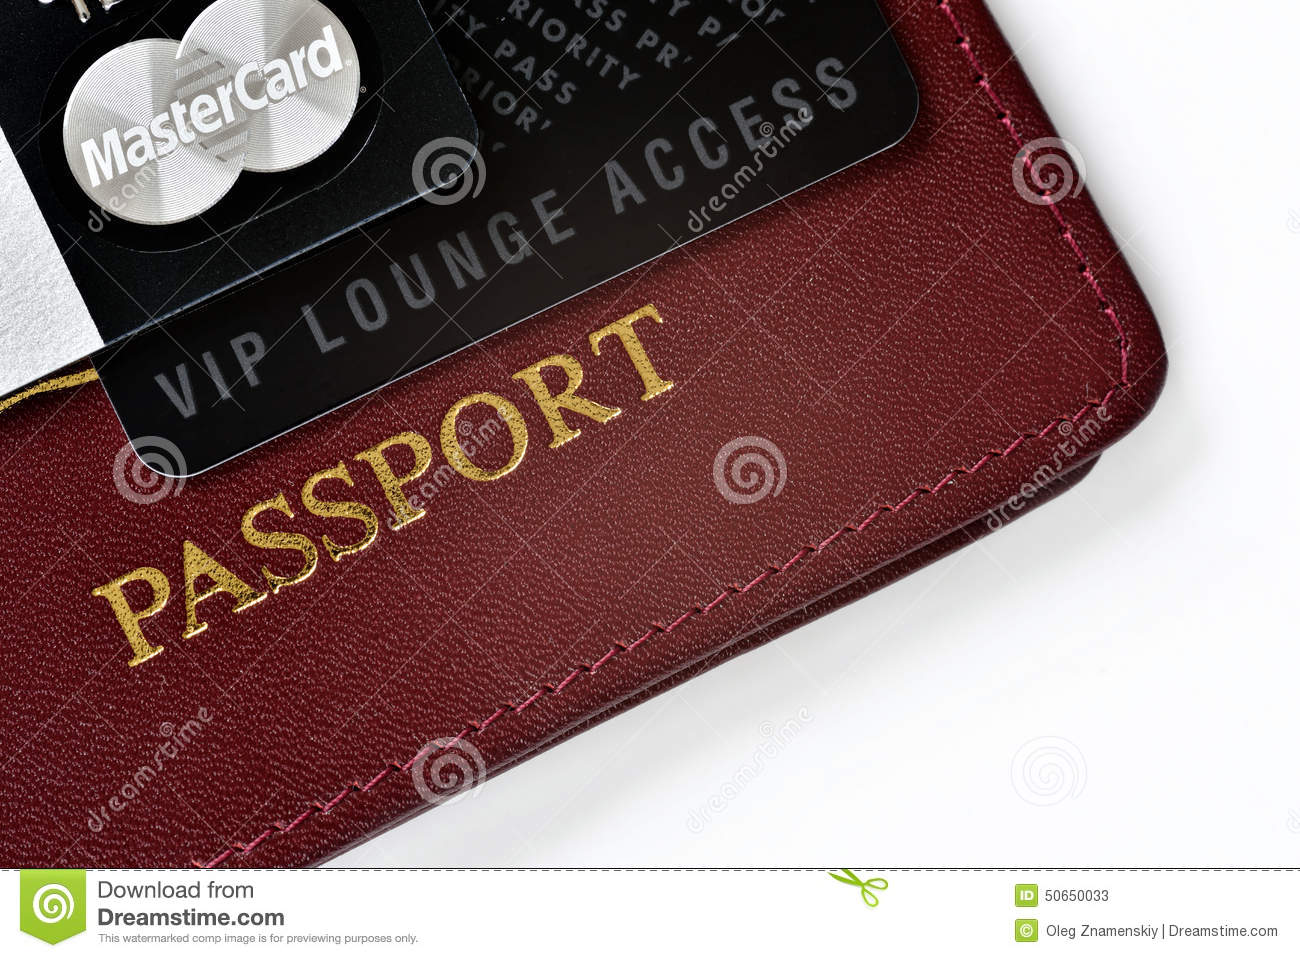 7f172e8d71 VIP travel concept editorial stock photo. Image of pass - 50650033